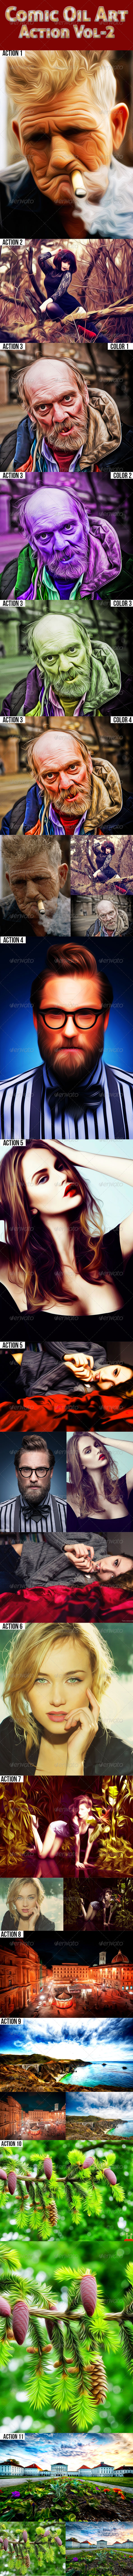 GraphicRiver Comic Oil Art Action Vol-2 8320315